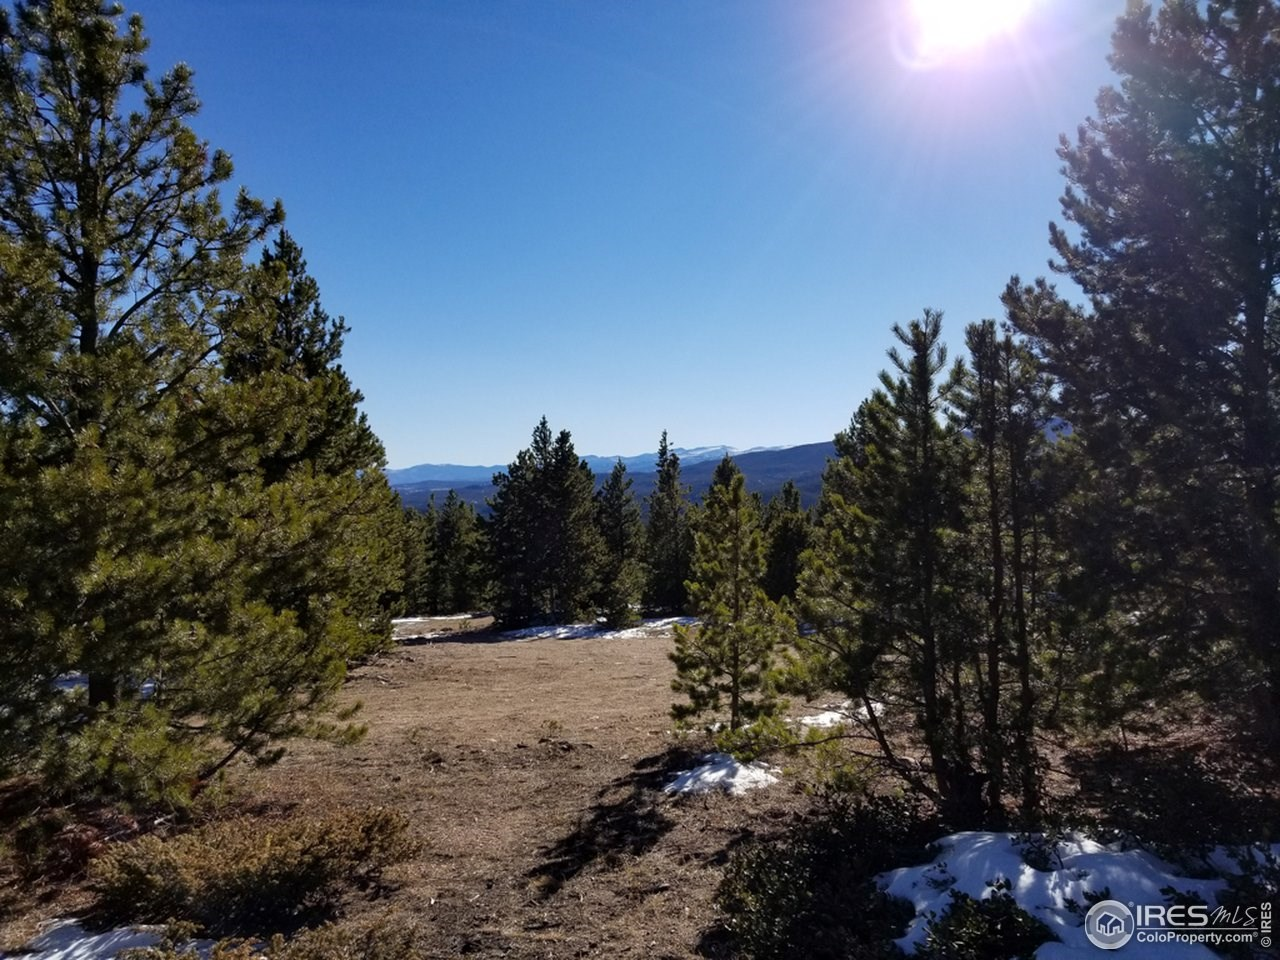 13+ Acres That Borders National Forest